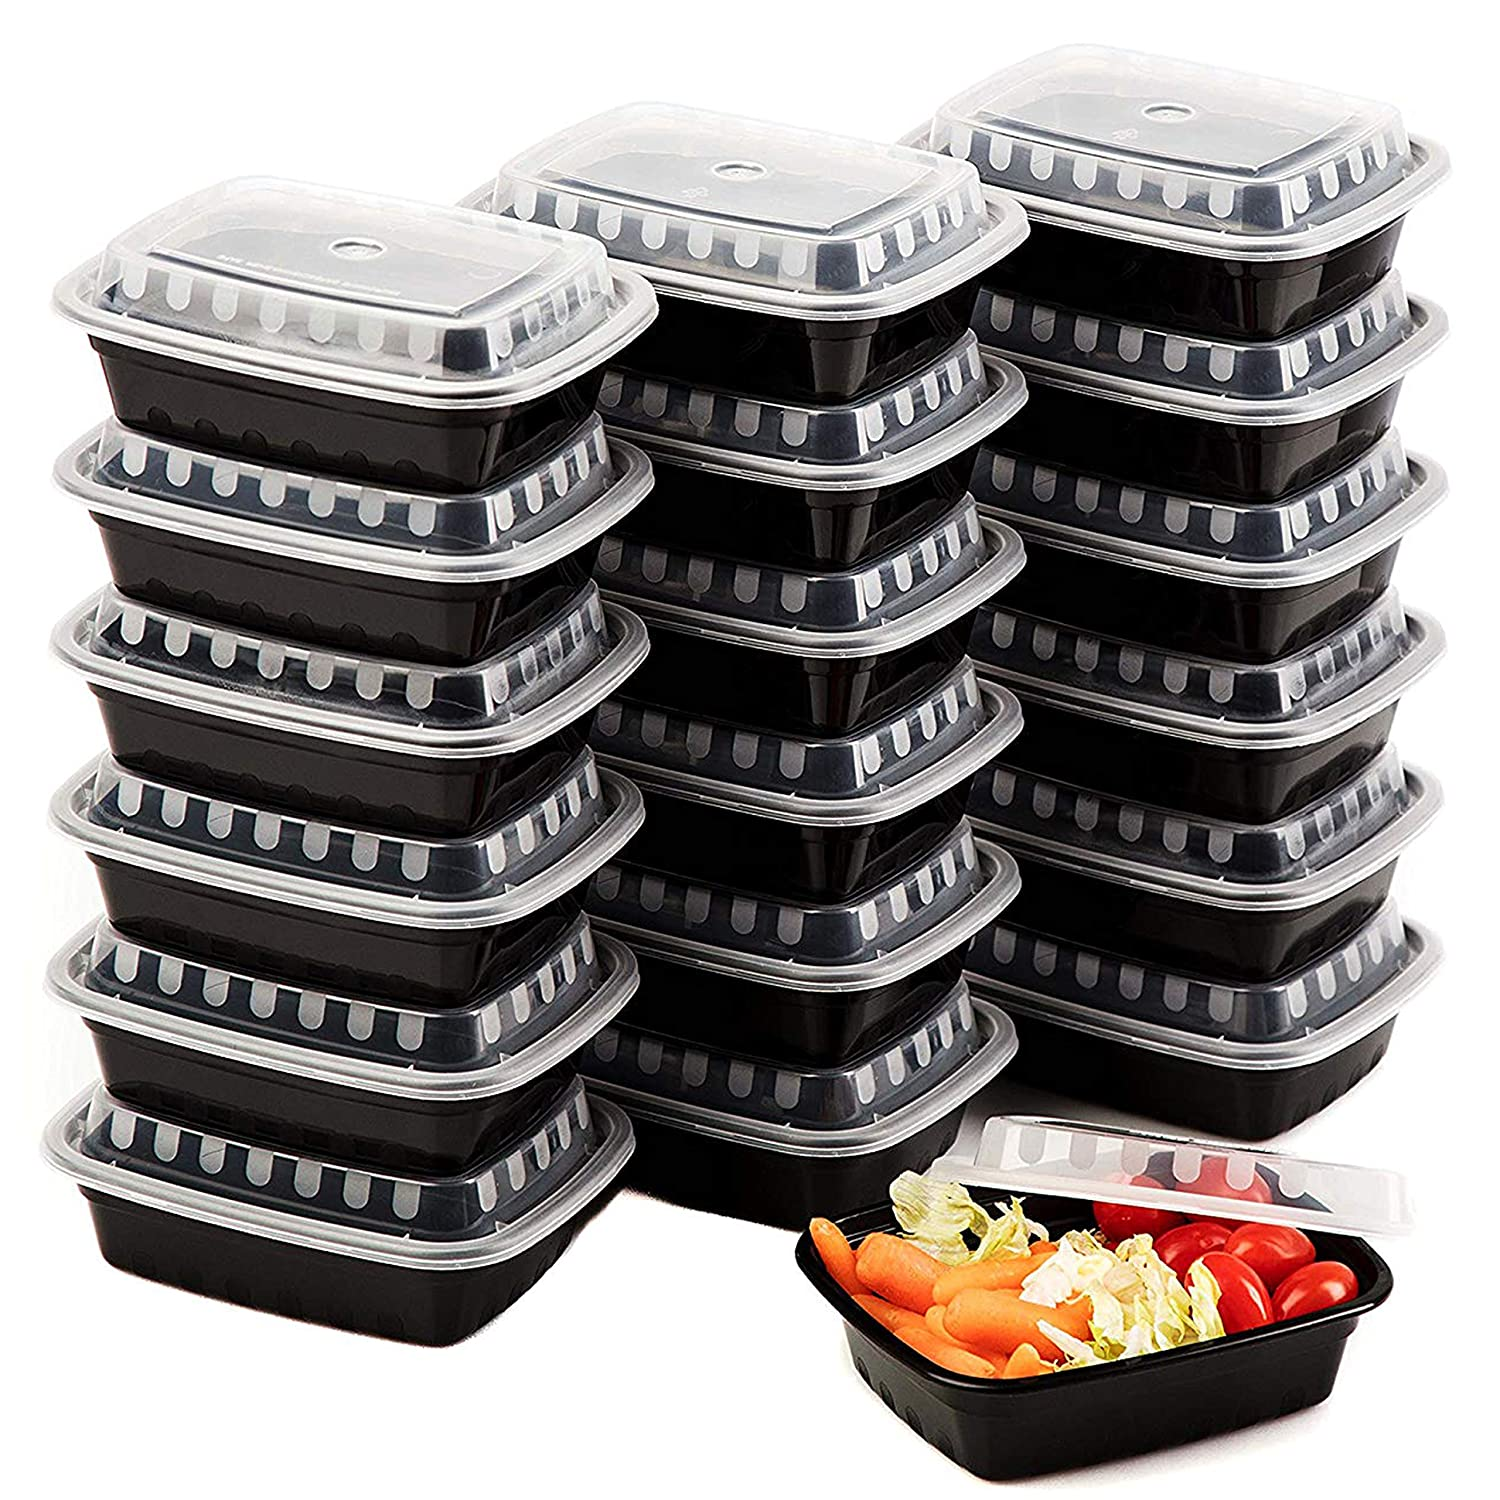 Premium SMALL meal prep containers - 25 Pack of 12OZ Mini Food Storage Bento Box - Reusable BPA Free Microwave and Freezer Safe Portion Control Trays by Upper Midland Products